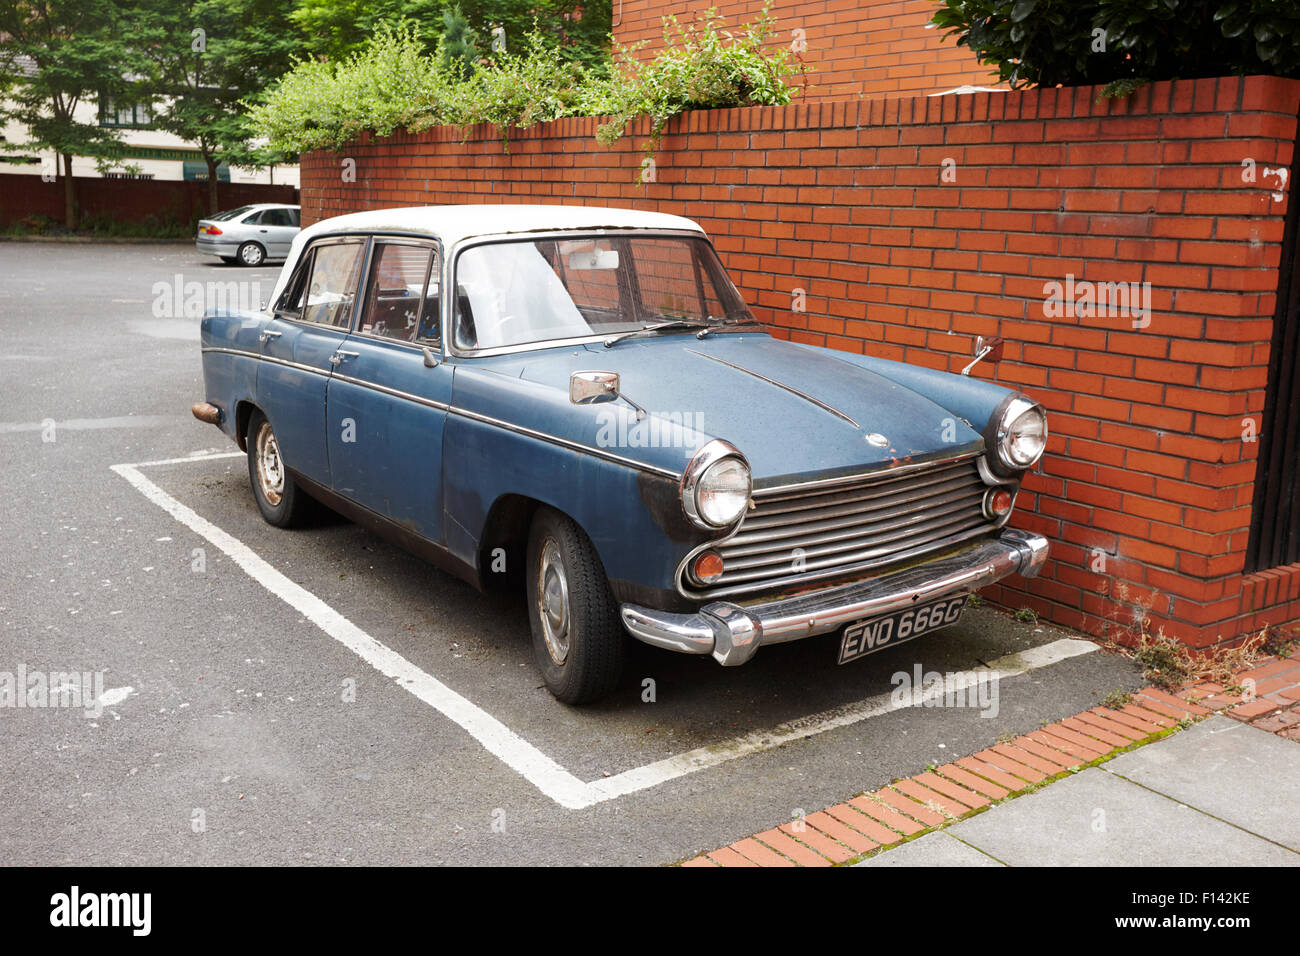 Morris Car High Resolution Stock Photography And Images Alamy